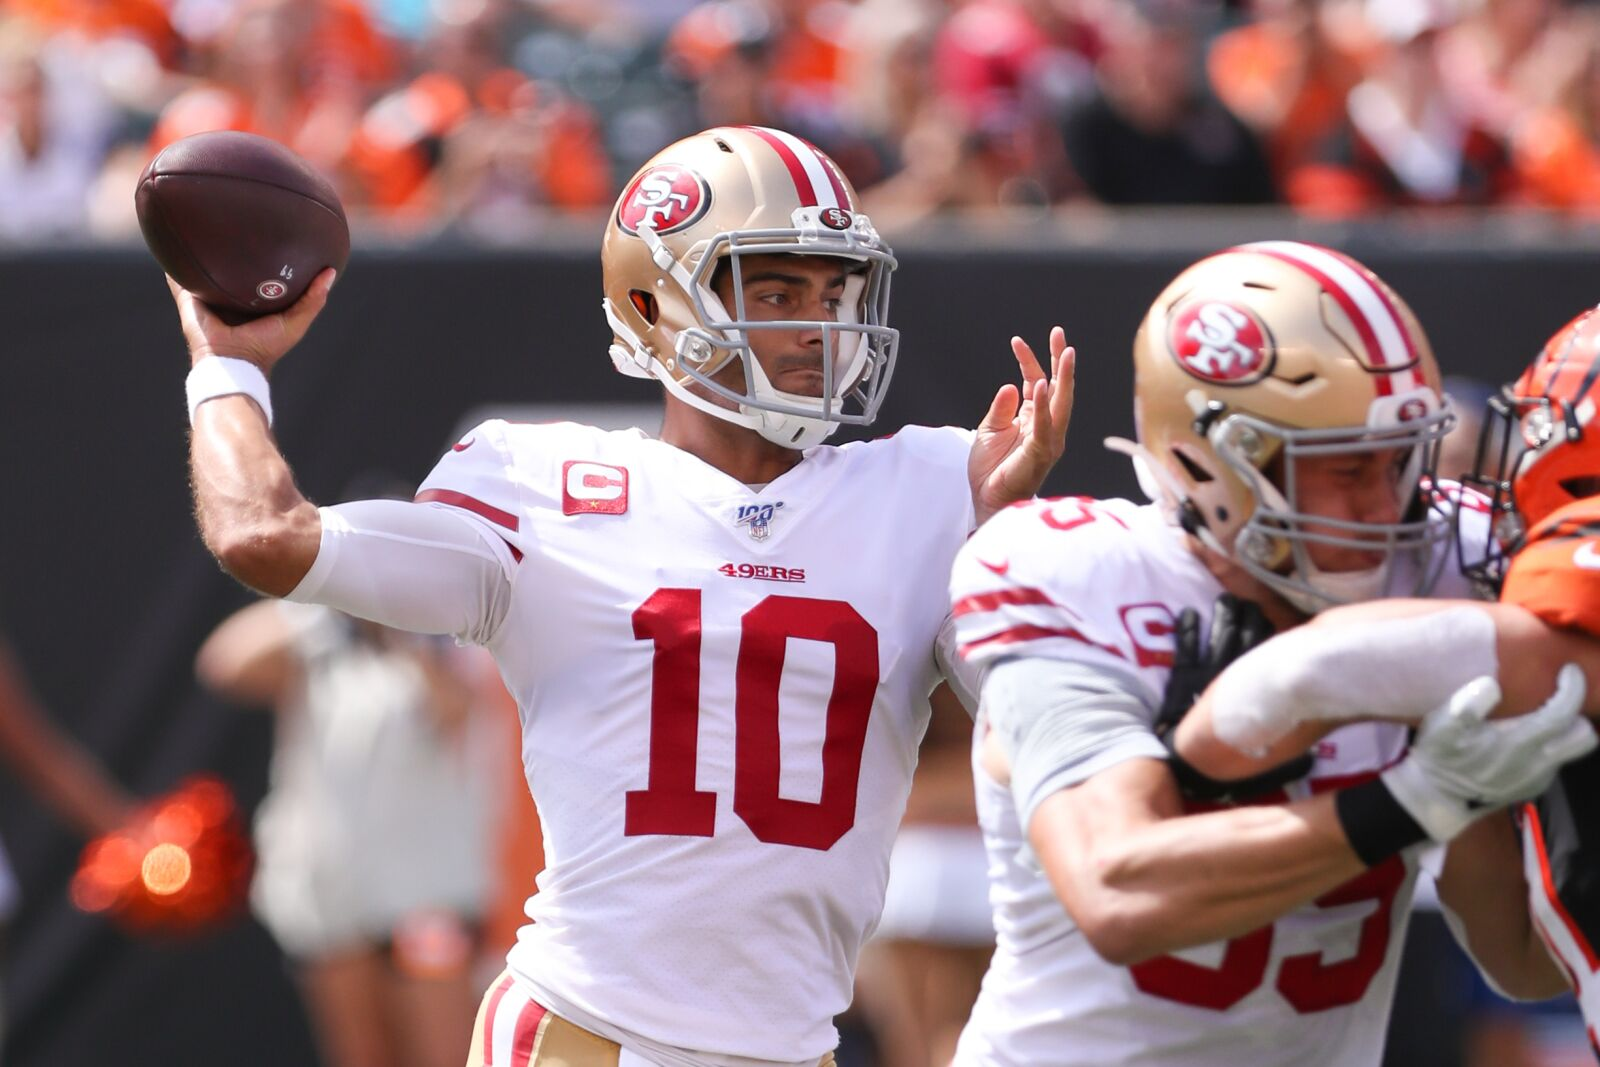 Believe it: Jimmy Garoppolo makes 49ers look like legit playoff contenders